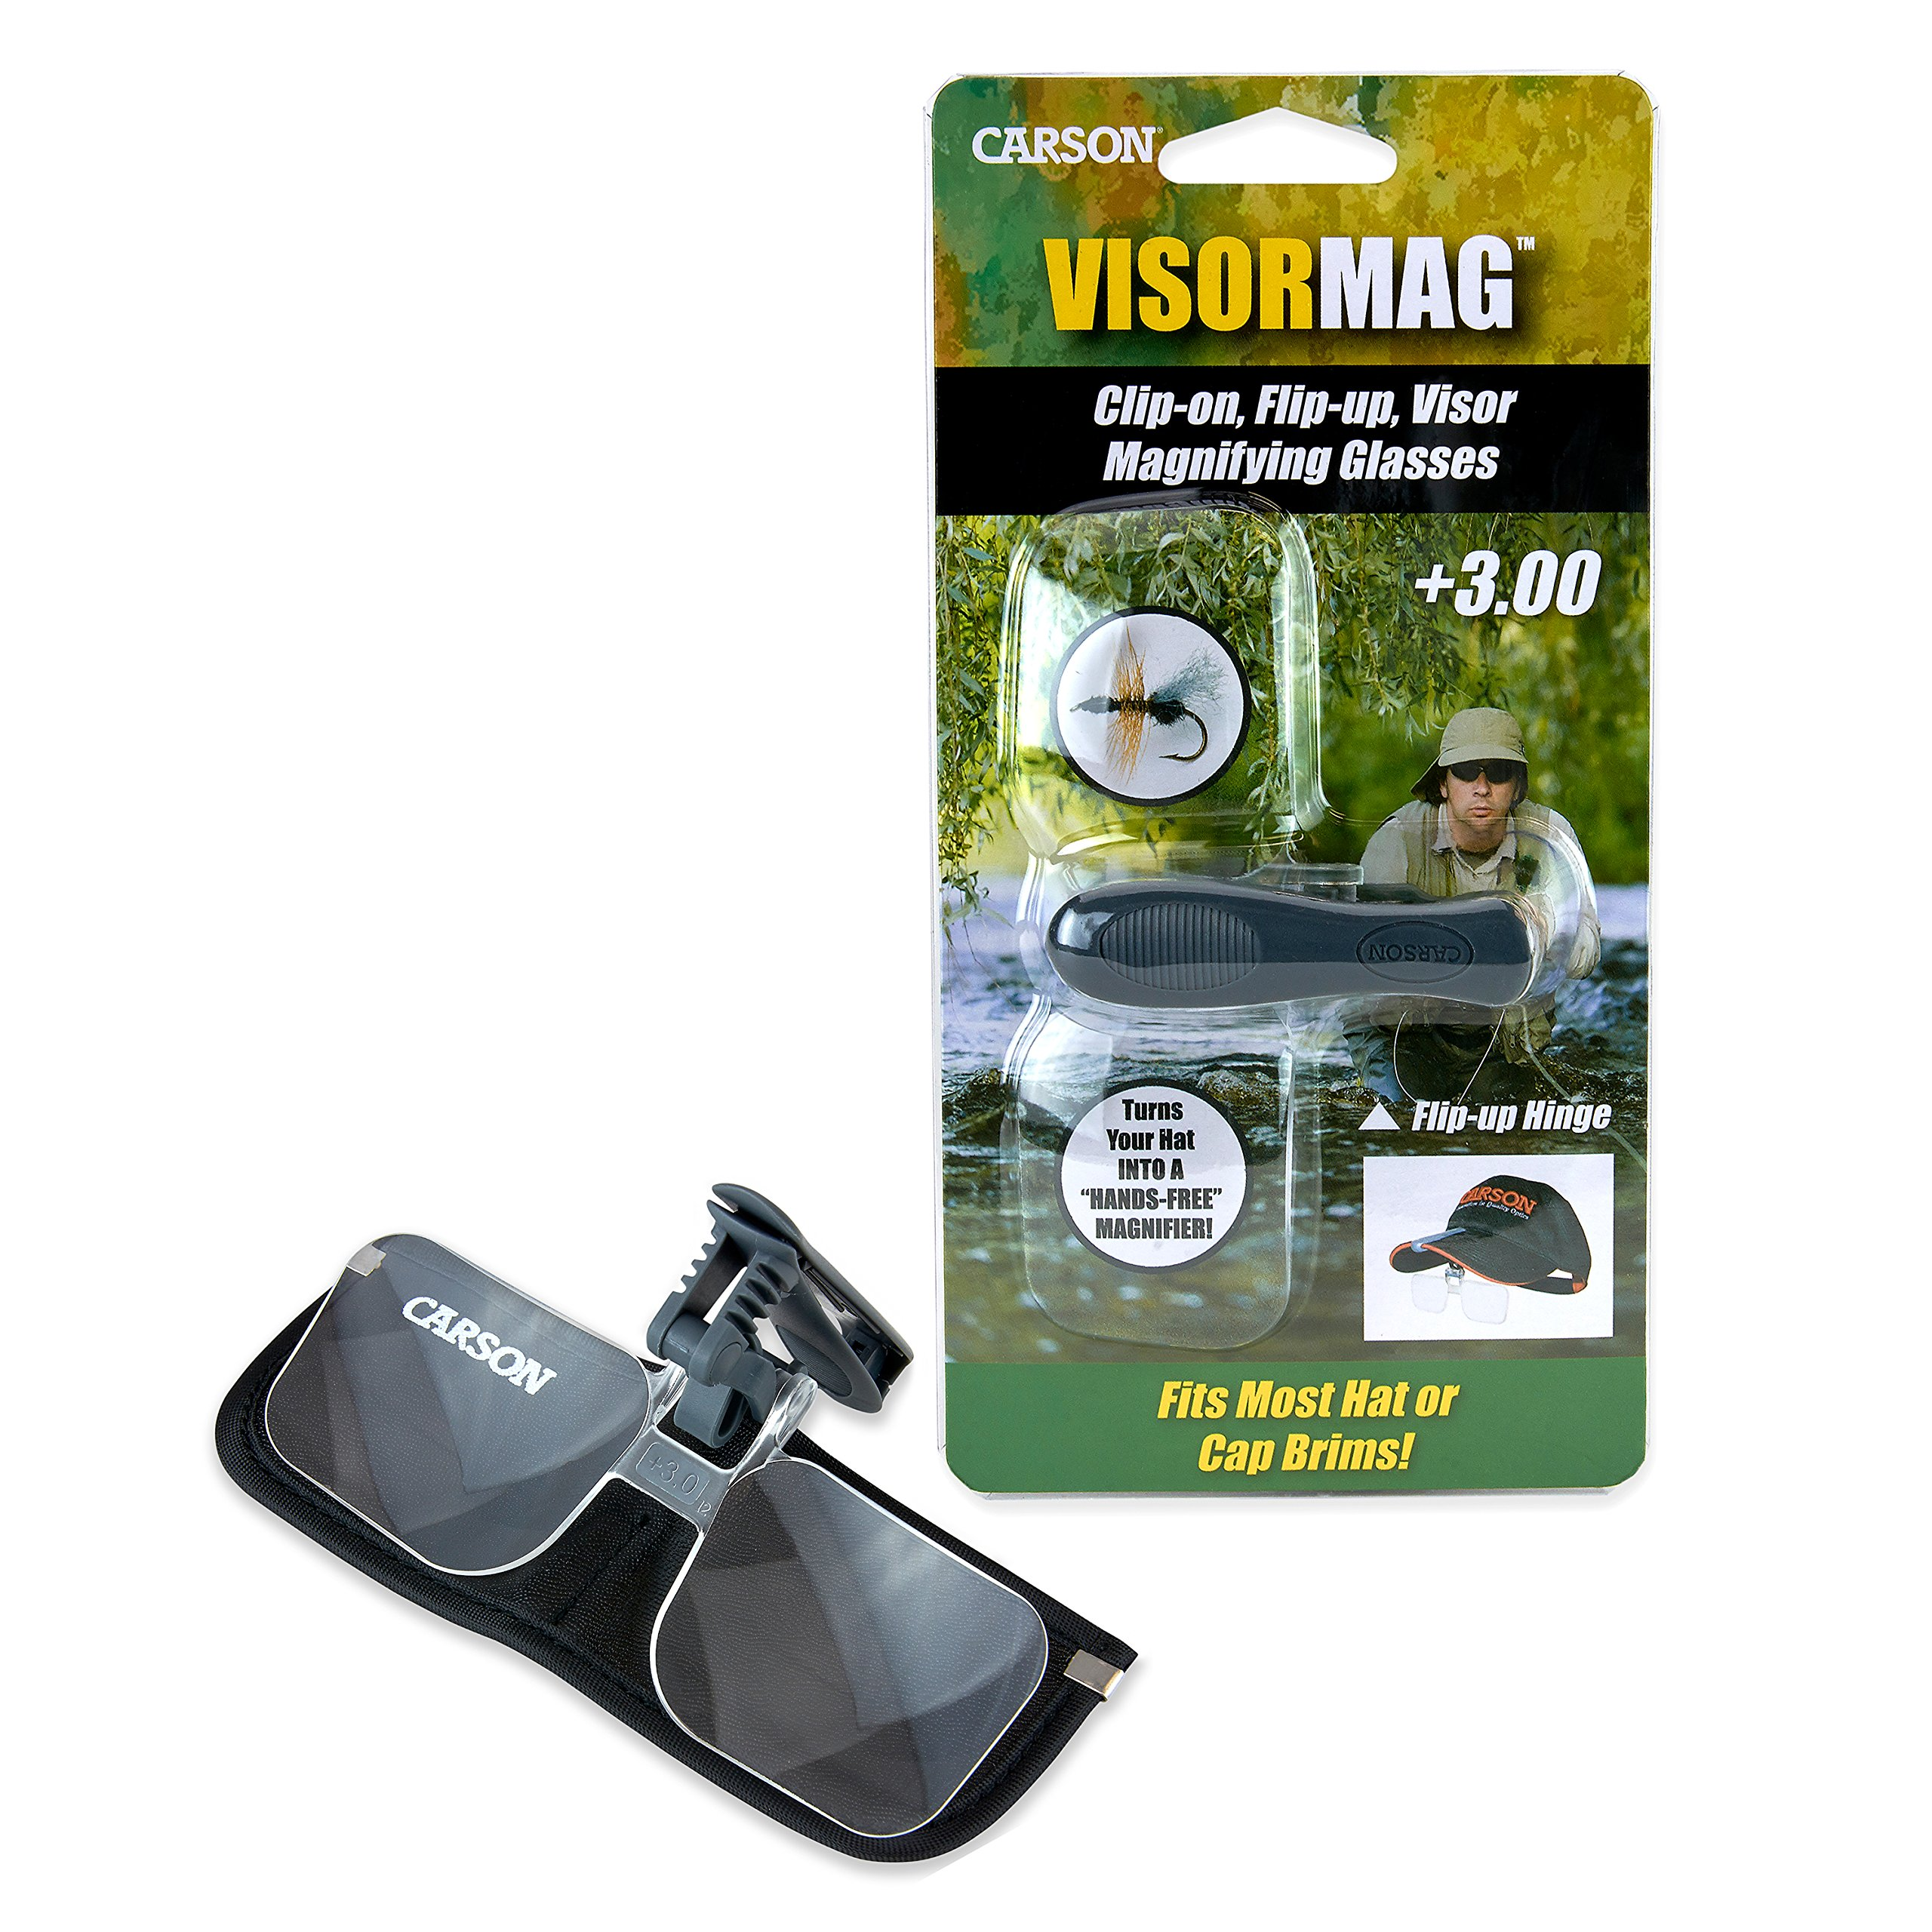 Carson Optical VisorMag 1.75x Power (+3.00 Diopters) Clip-On Magnifying Lens for Hats VM-10 by Carson (Image #5)